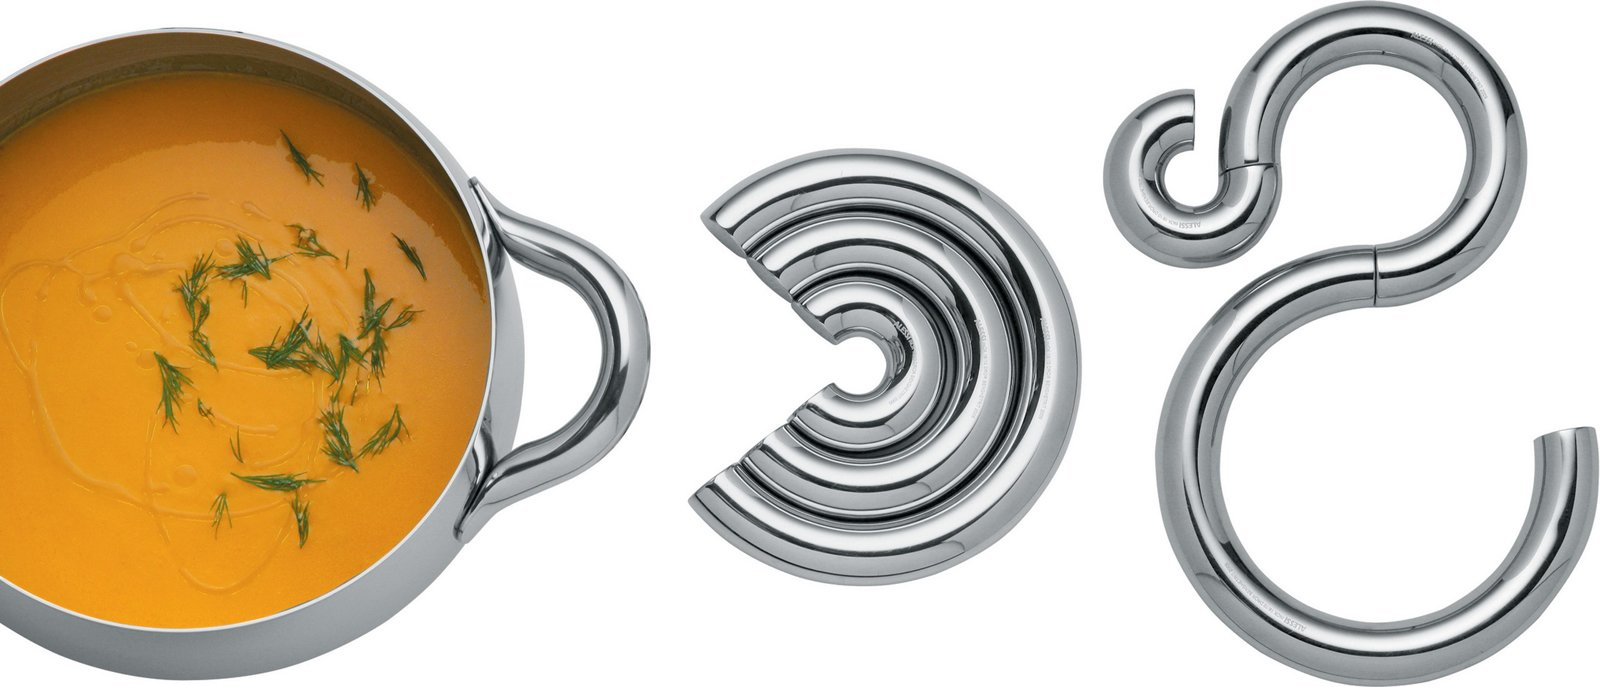 Try it Trivet, by Dror Benshetrit for Alessi.  This three-piece magnetic trivet can be rearranged to form different stainless steel shapes that will protect your table from a hot pot.  Photo 1 of 14 in Alessi's Fall/Winter Collection